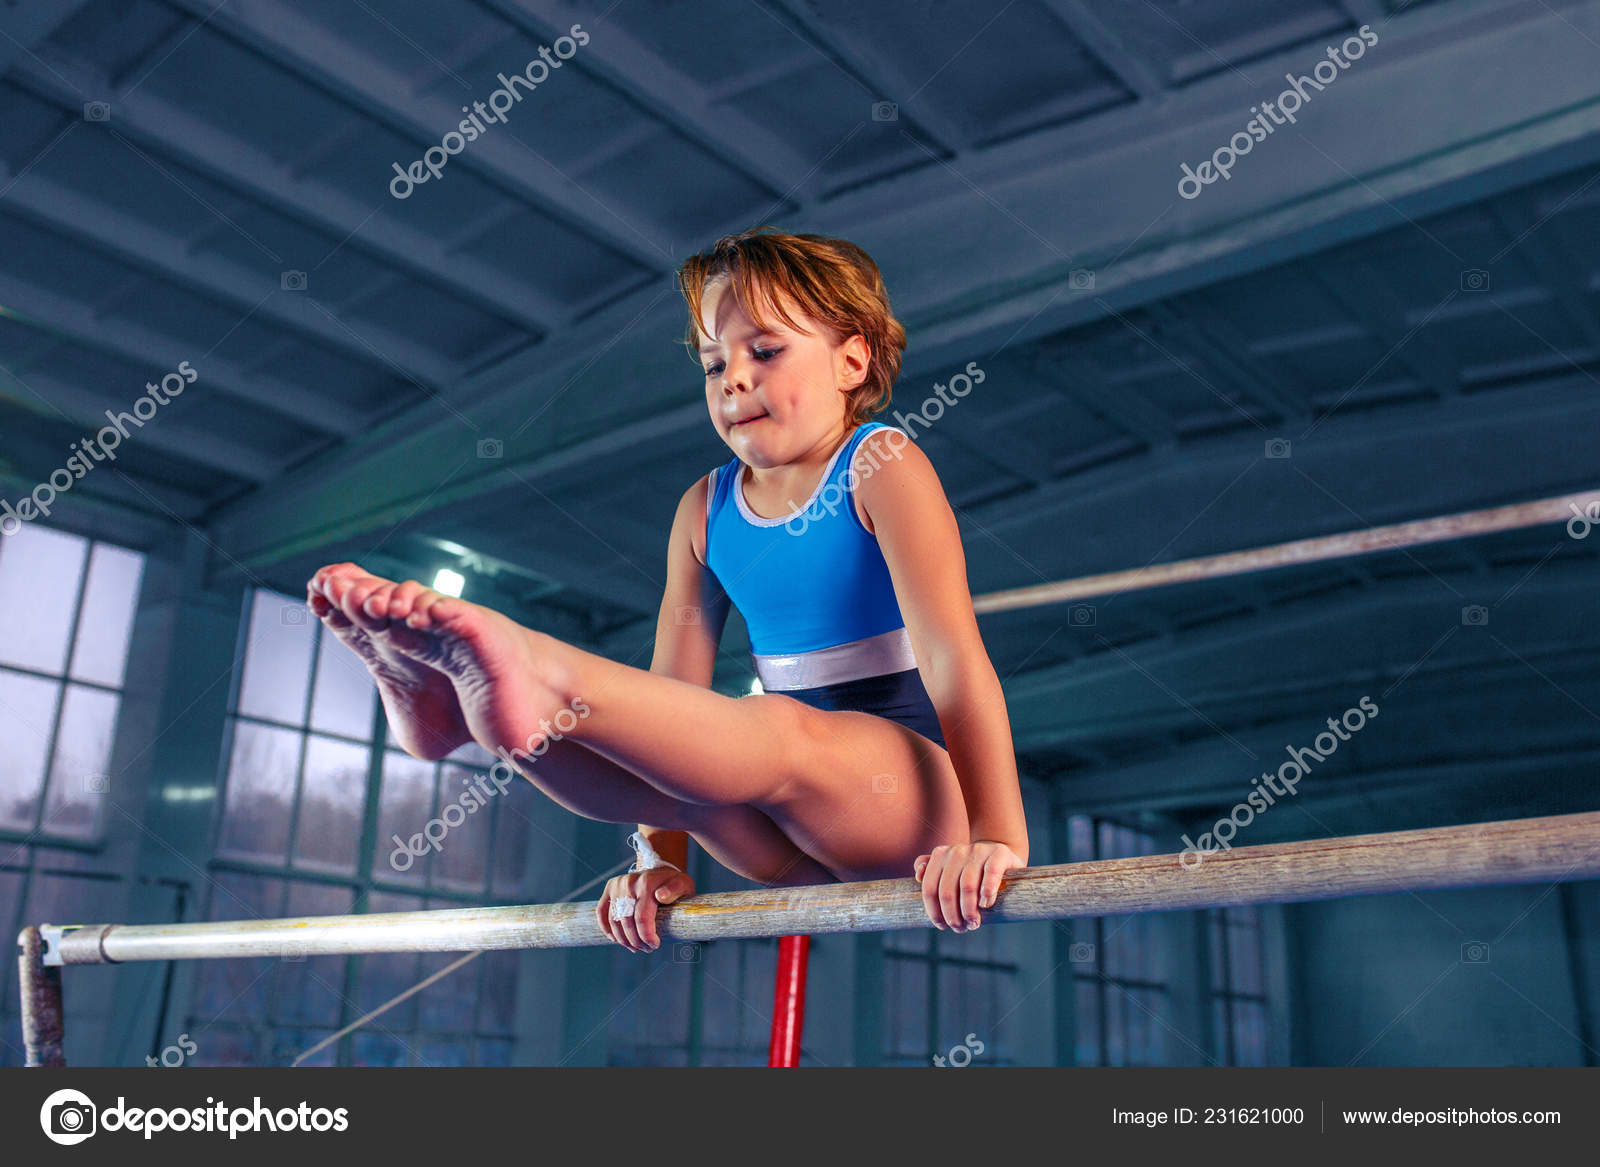 Beautiful girl is engaged in sports gymnastics on a parallel